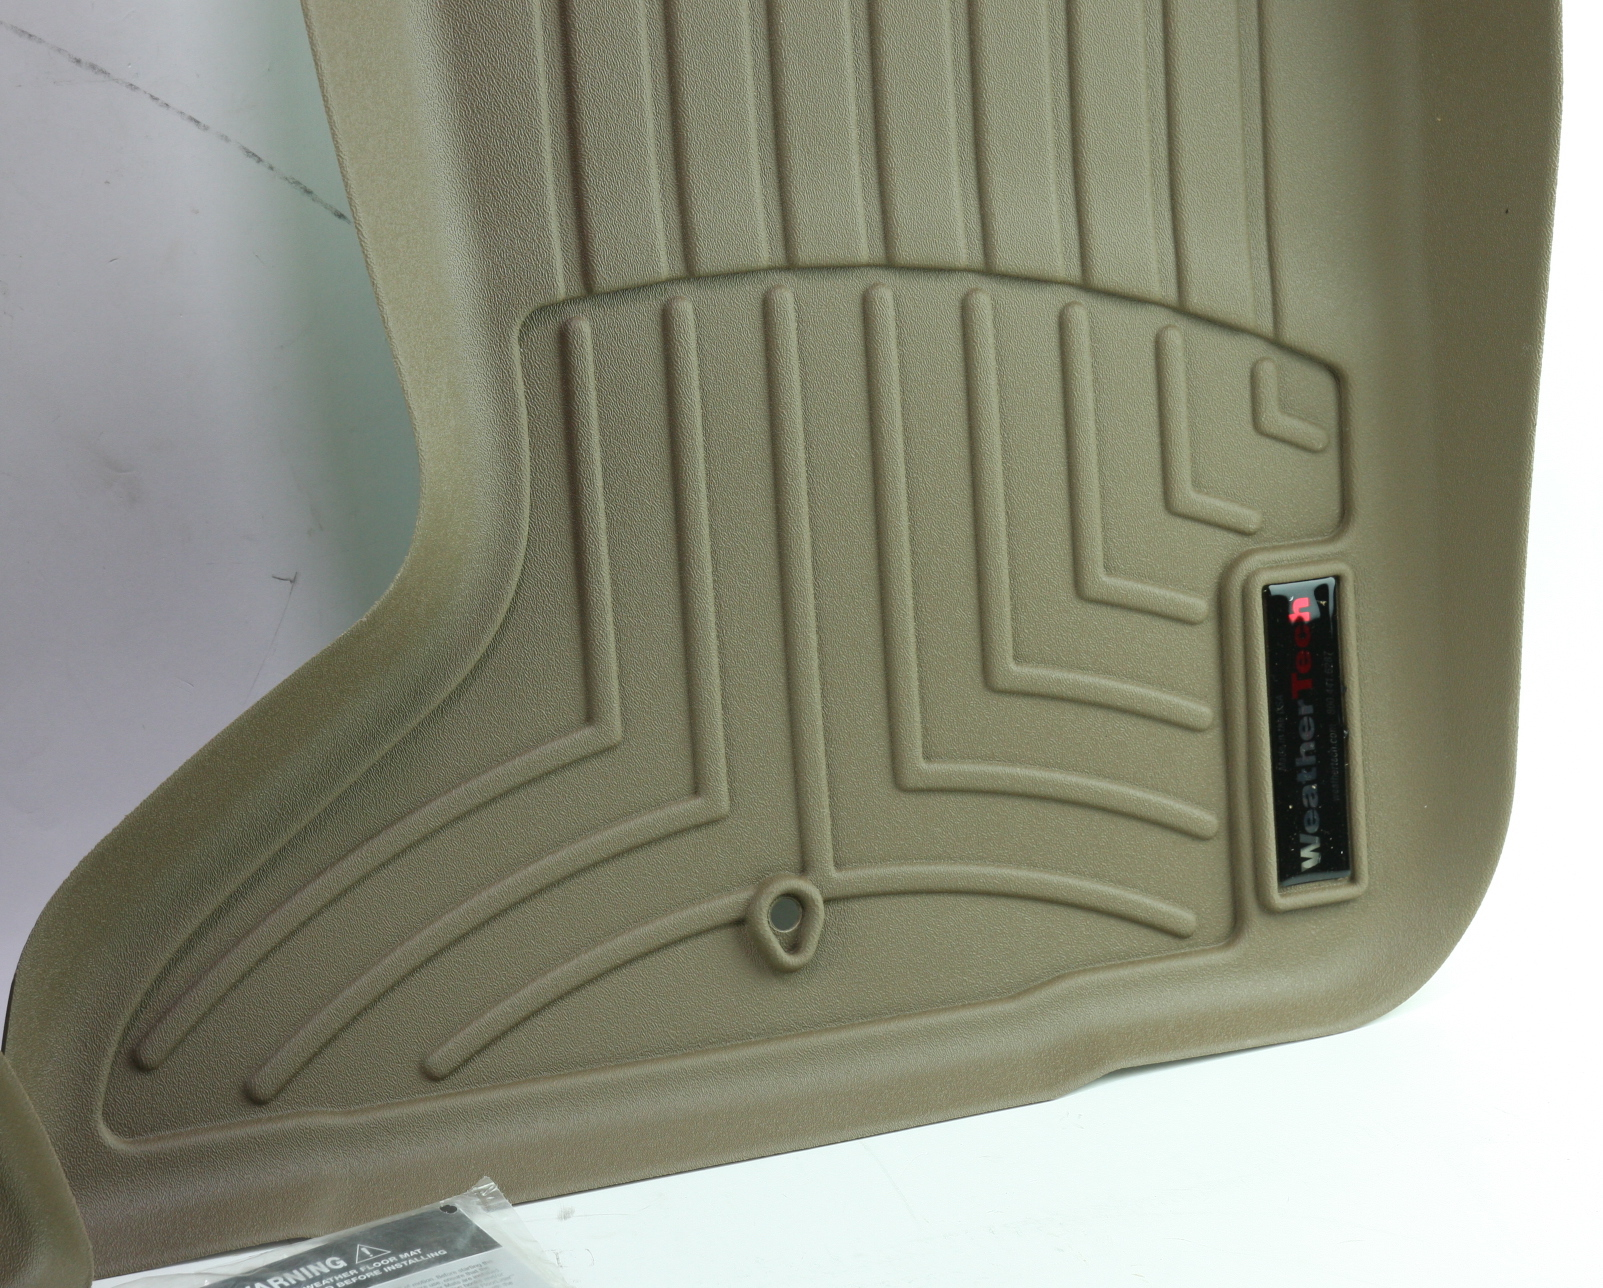 *** New WeatherTech 454251 Front Floor Liner for Challenger Charger 300 AWD Tan - image 9